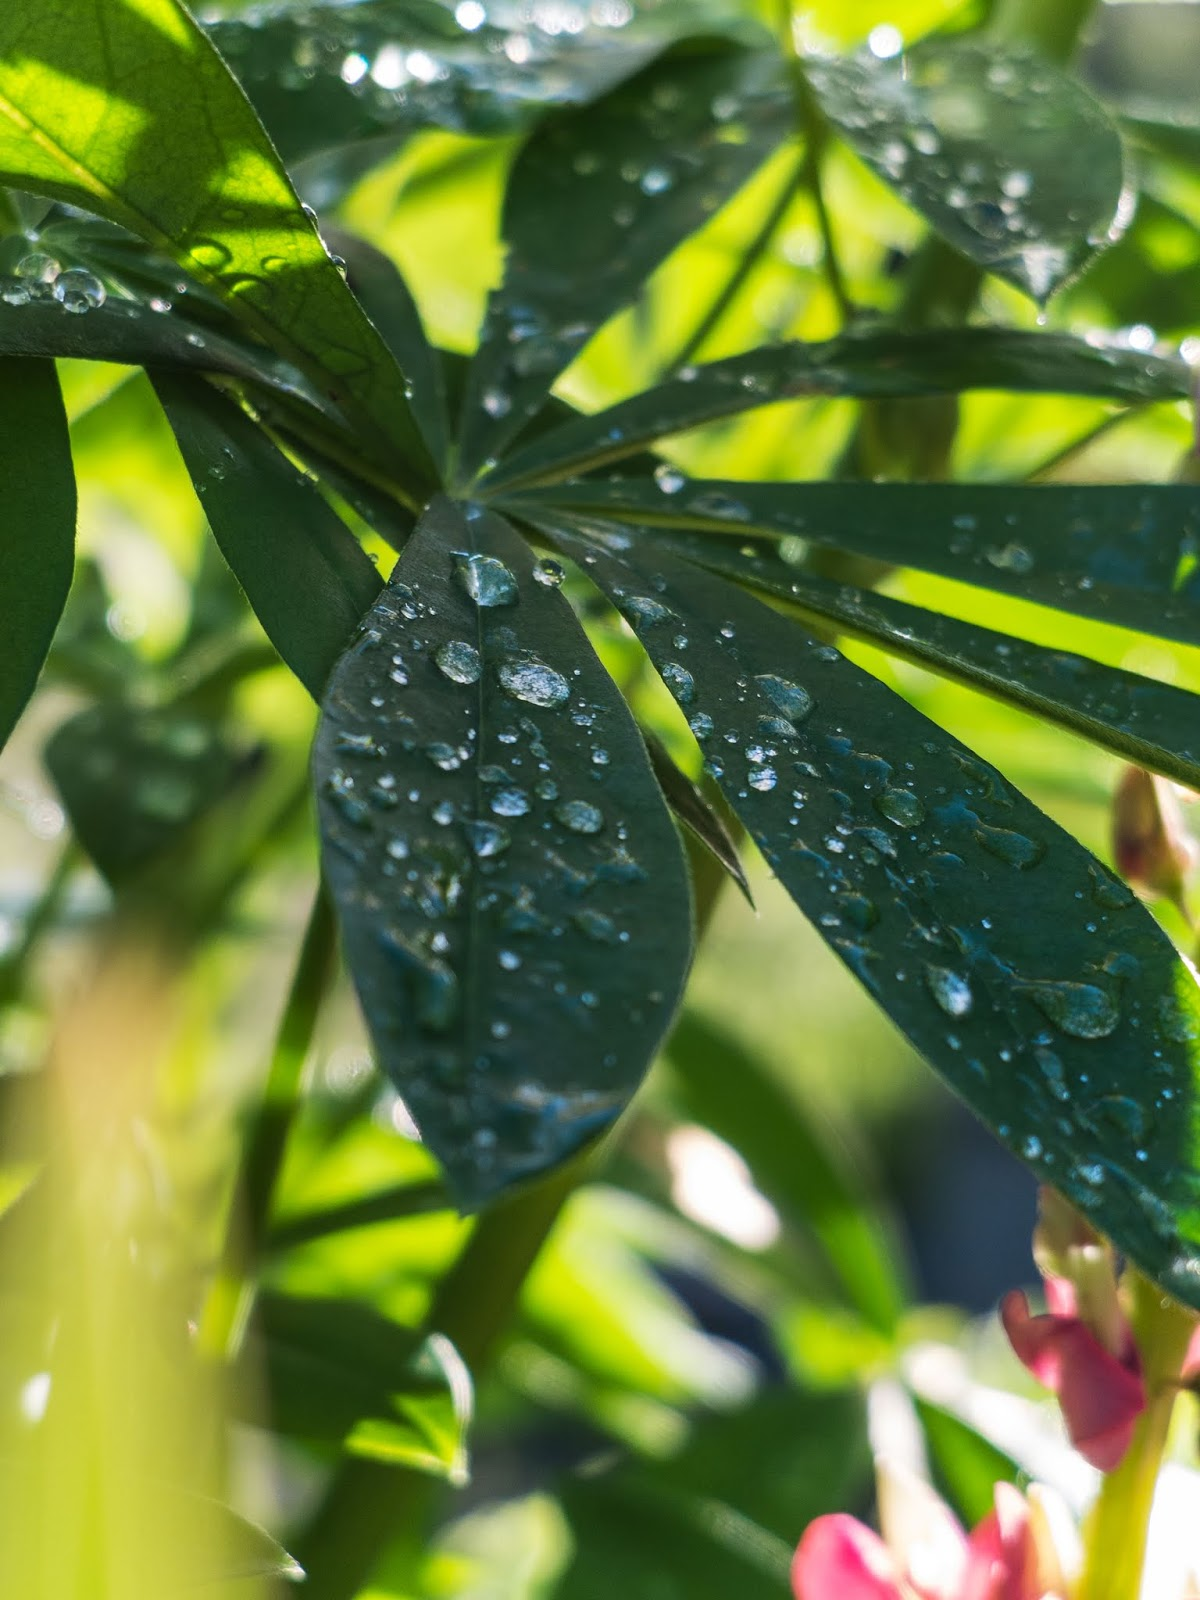 A close up of raindrops on a Lupine leaf with sunlight in the background.